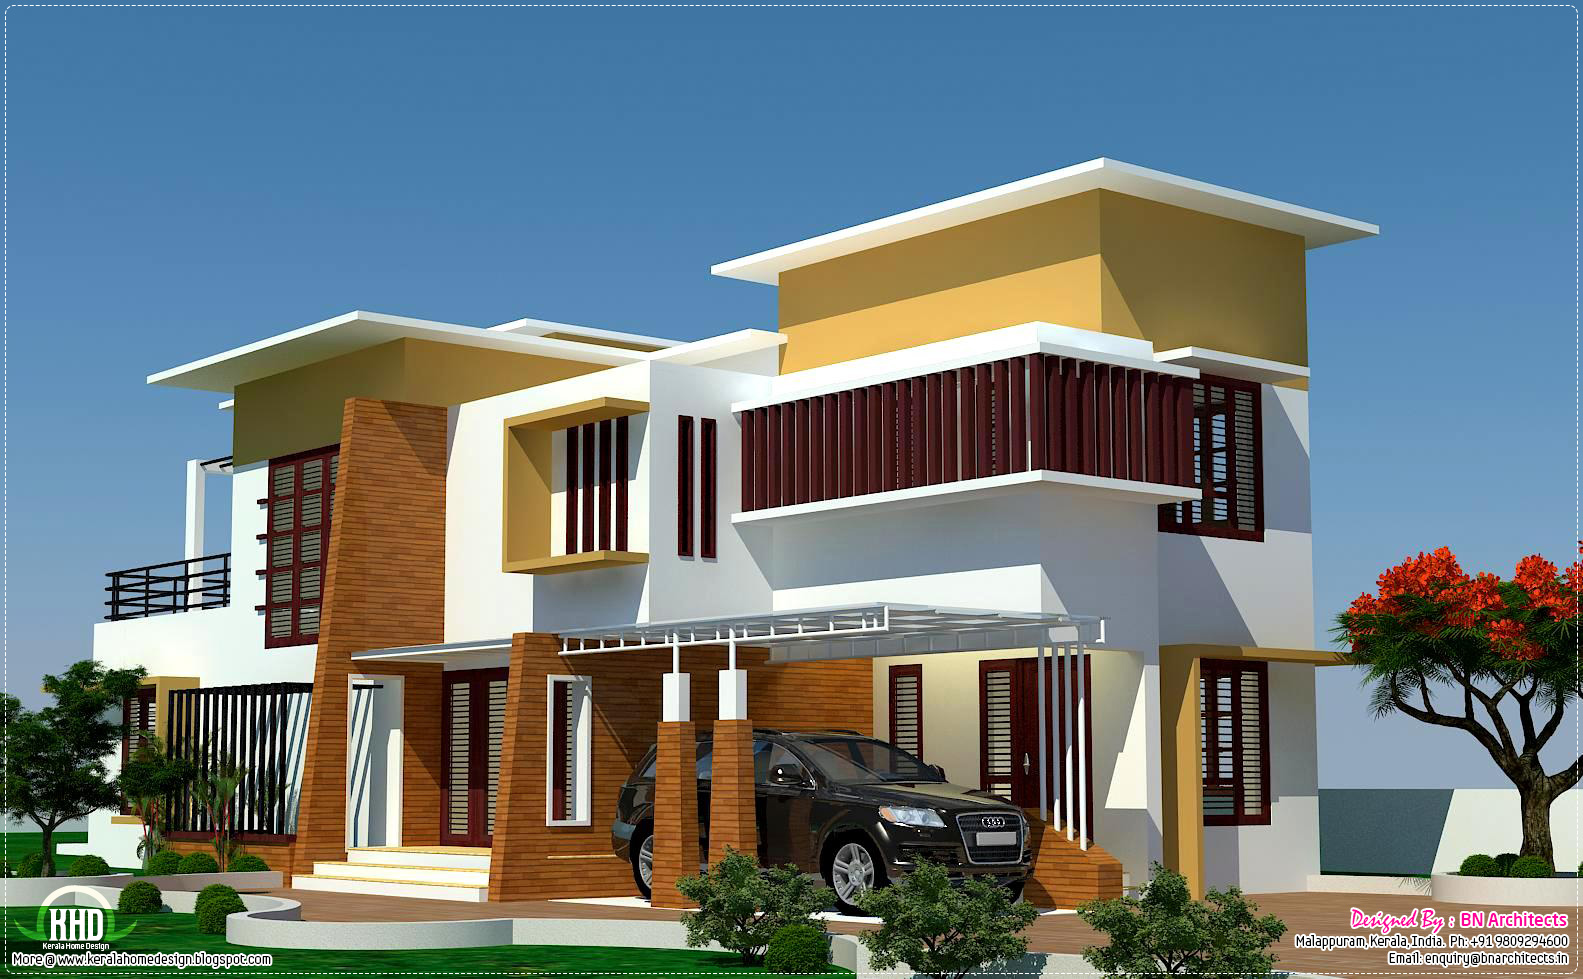 4 bedroom Modern villa design | House Design Plans